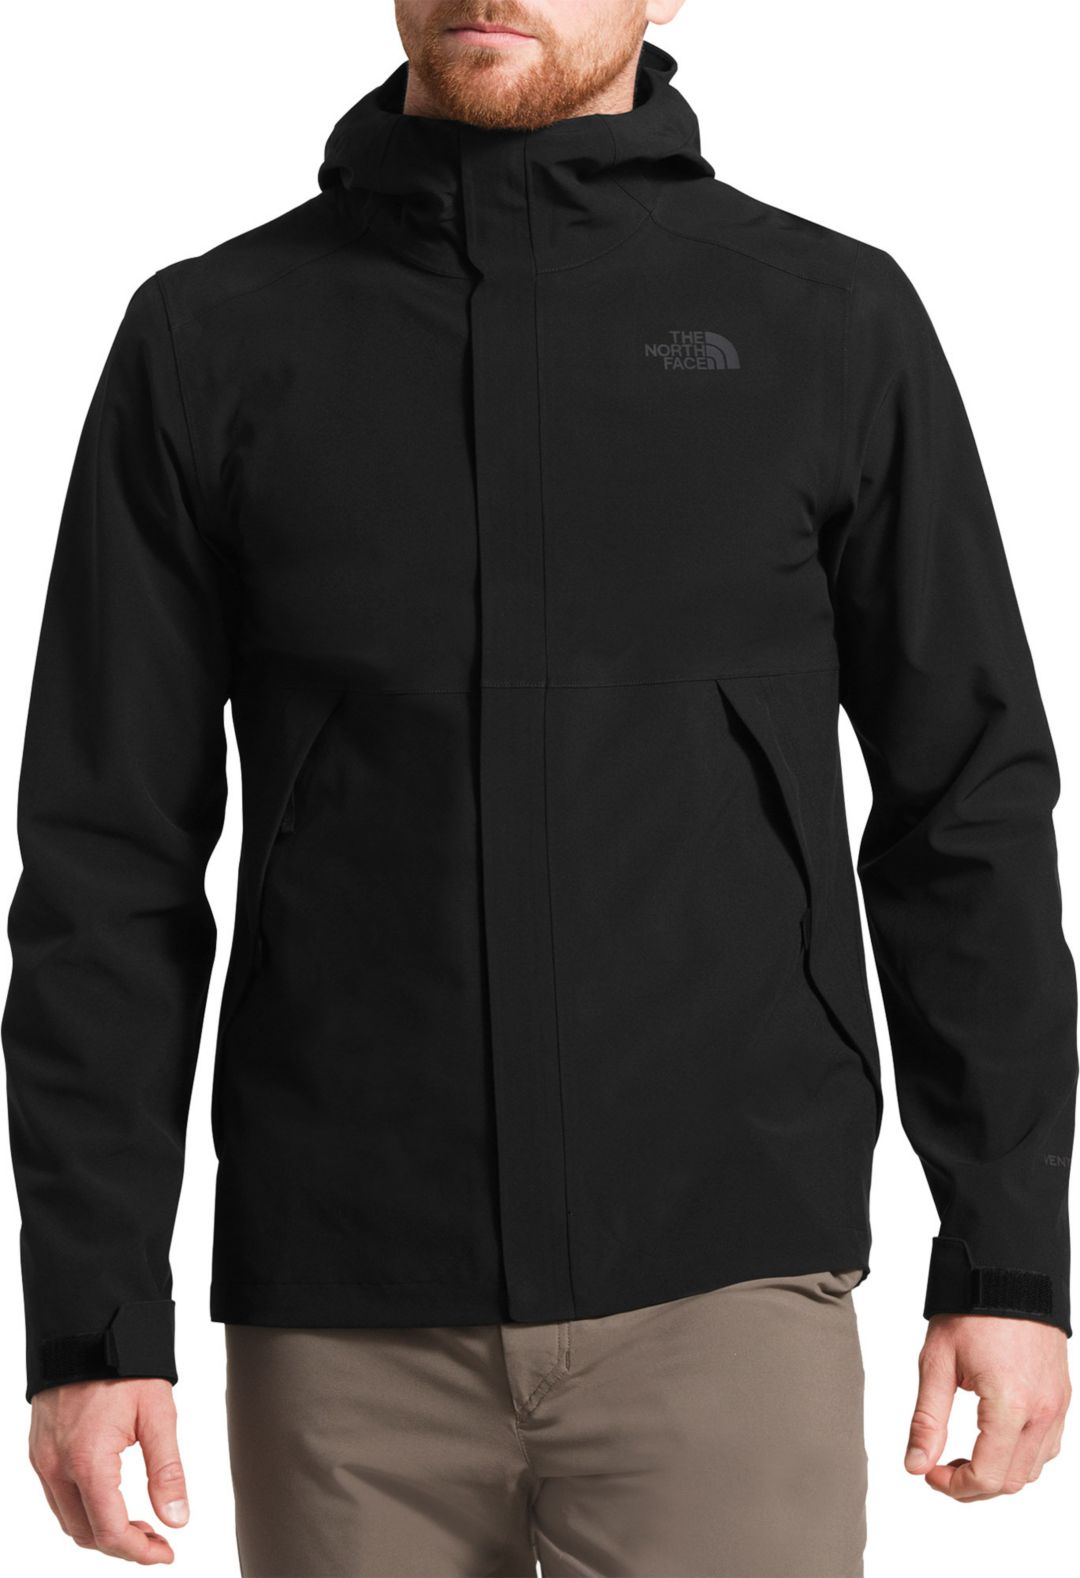 a8a640507 The North Face Men's Apex Flex DryVent Jacket